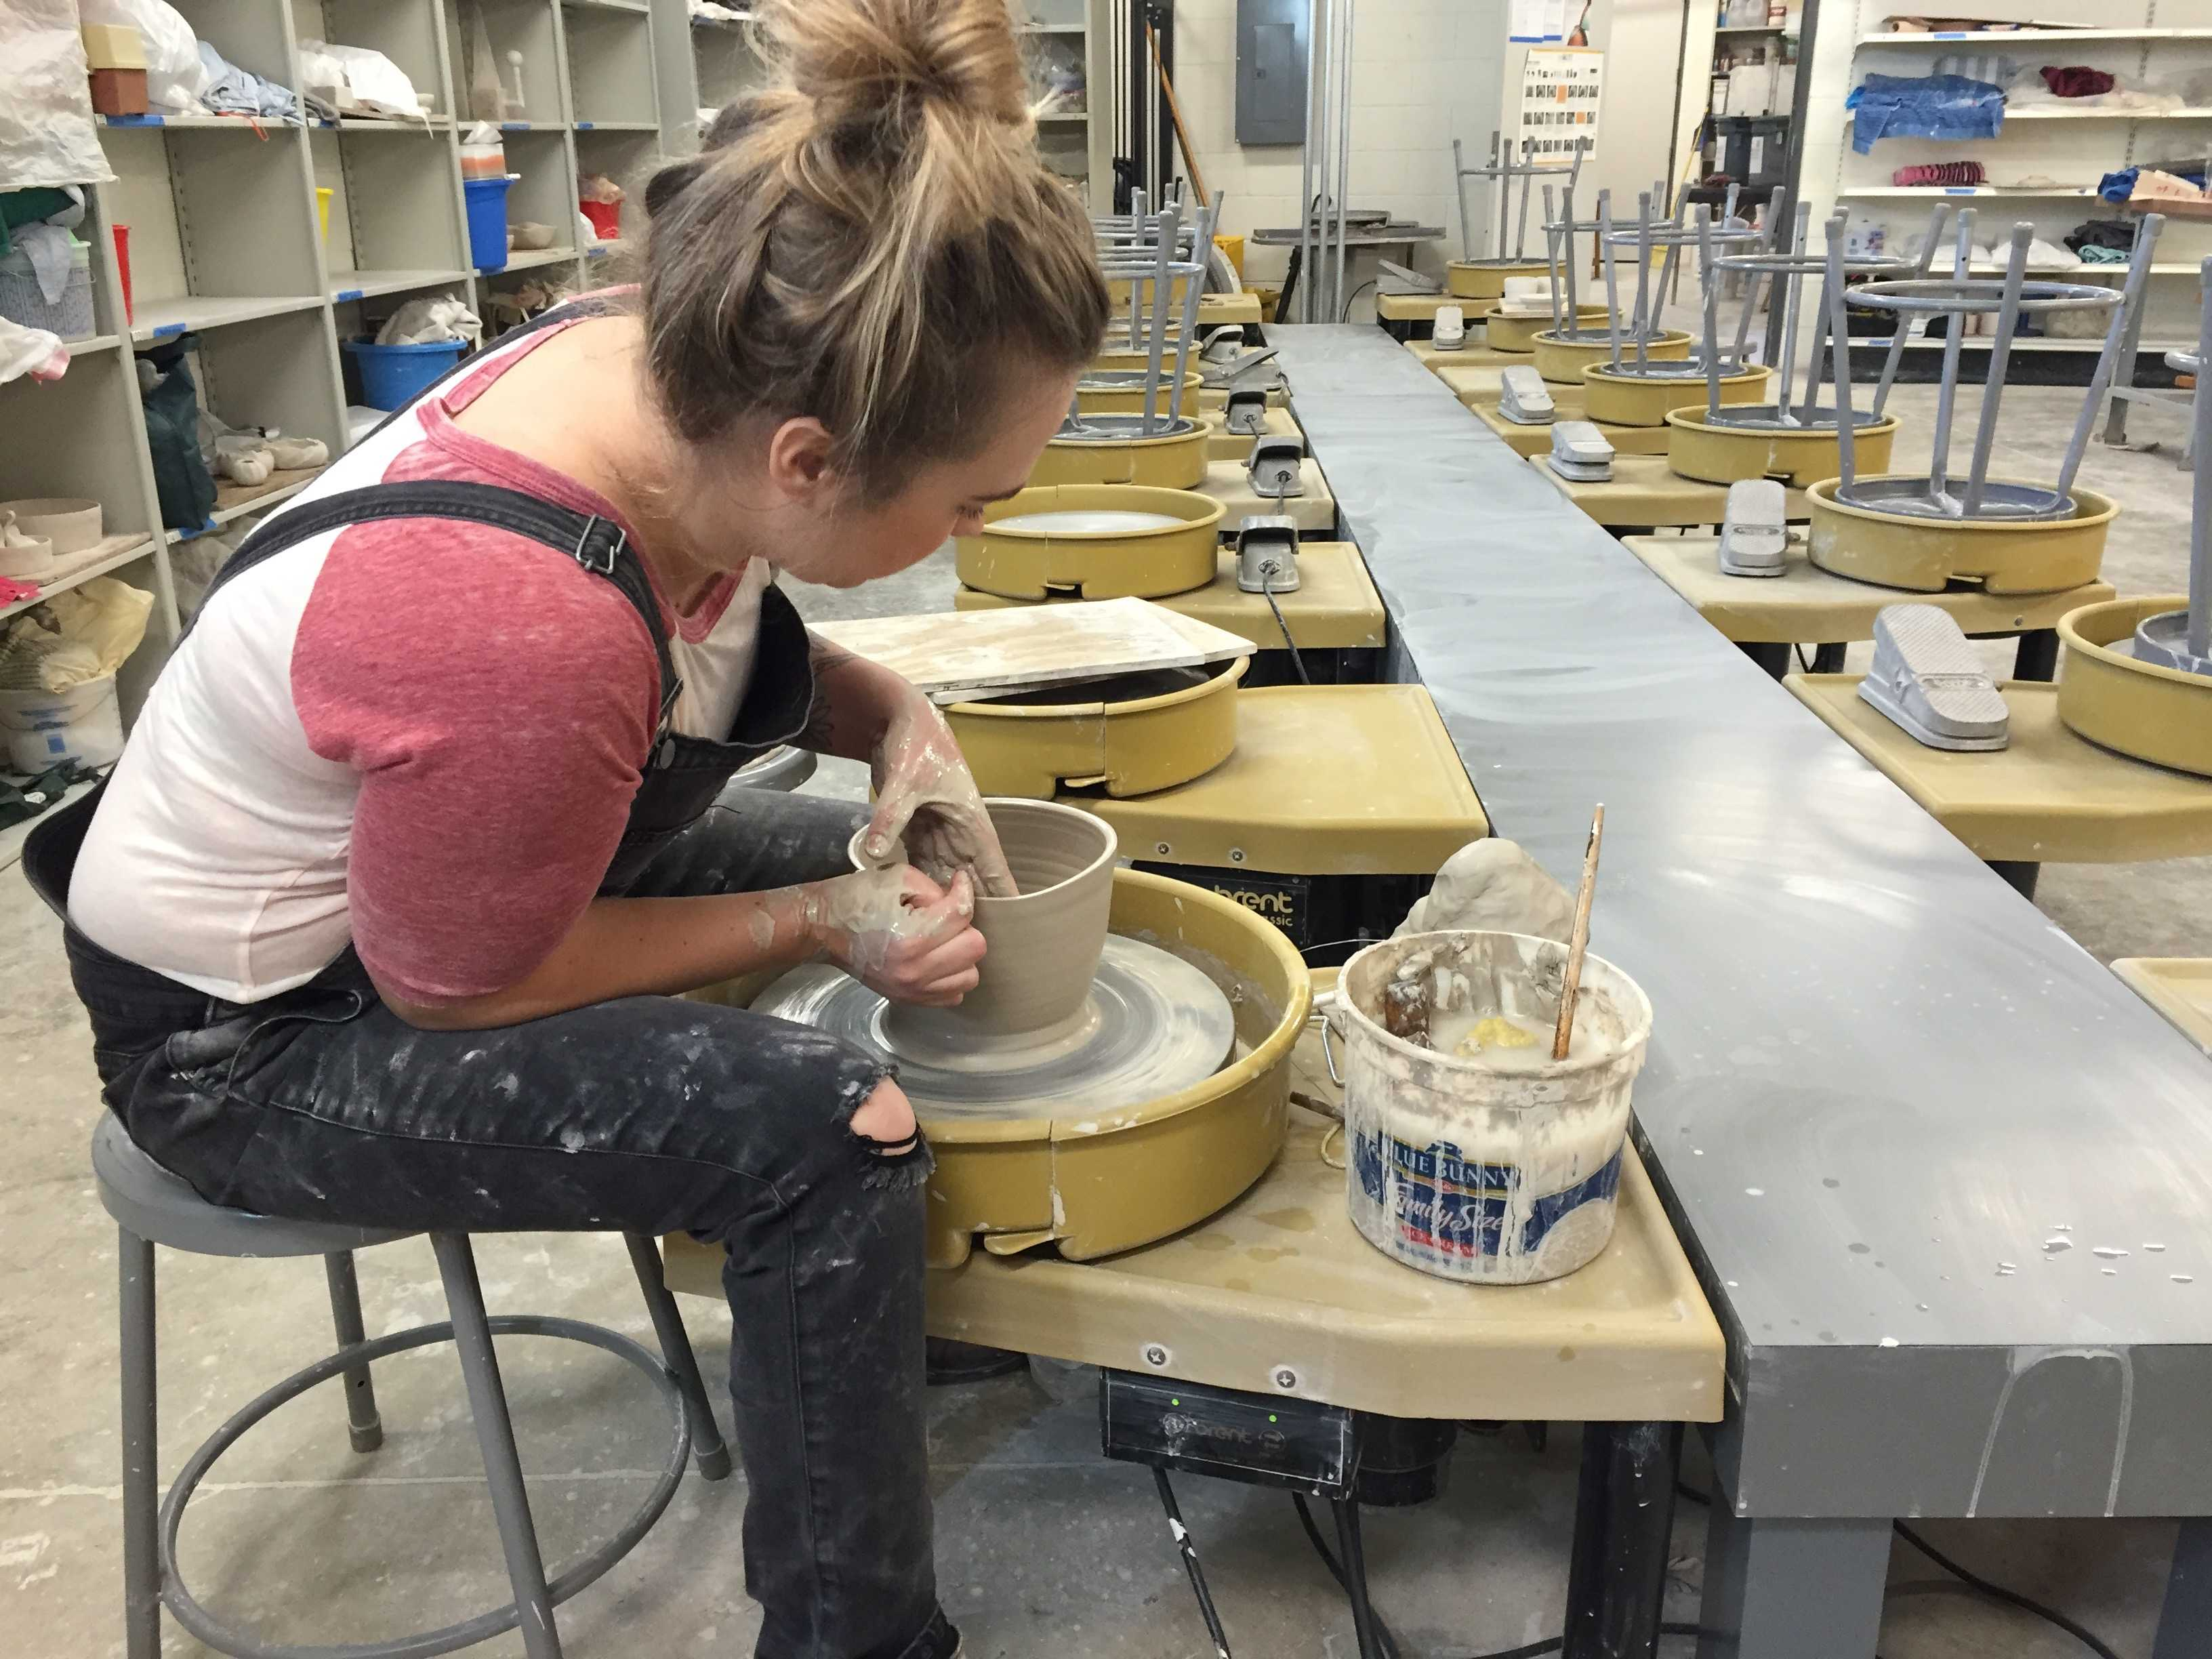 Tanner works on a piece in the ceramics studio on campus. Photo by Tiffany Salameh